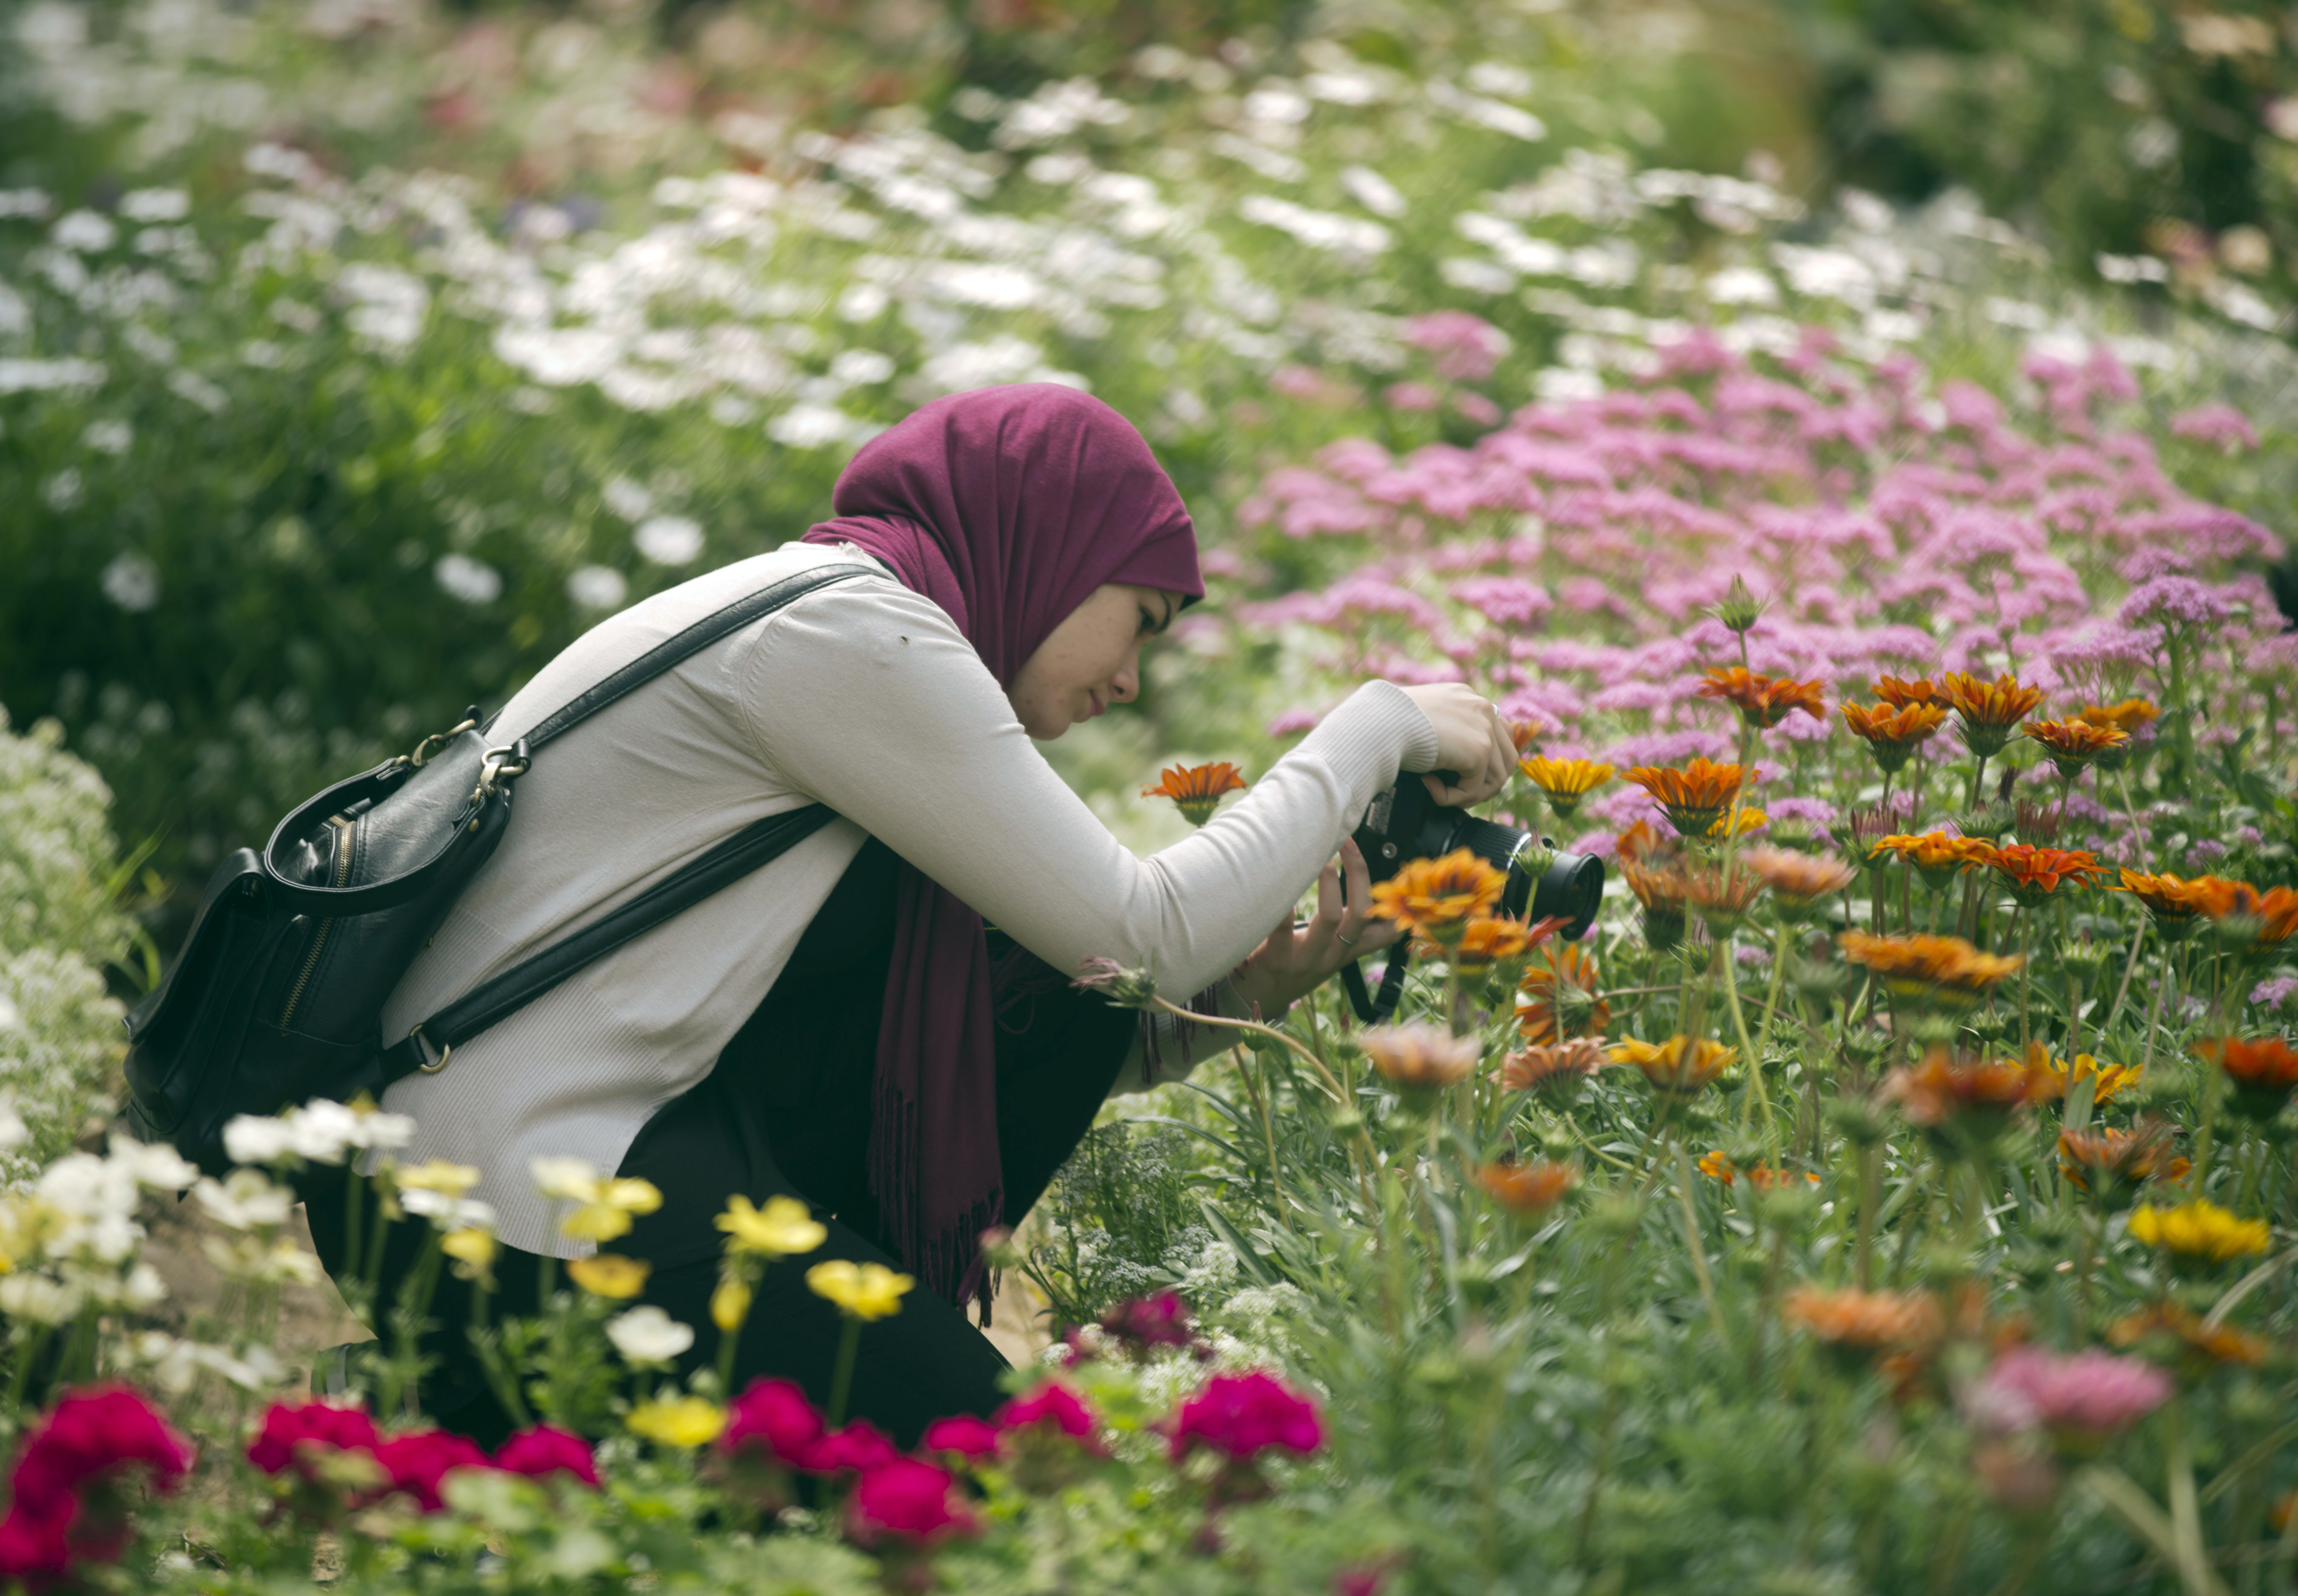 "<div class=""meta image-caption""><div class=""origin-logo origin-image ap""><span>AP</span></div><span class=""caption-text"">A visitor takes pictures at the Spring Flowers exhibition at the Orman Garden, in Cairo, Egypt. (AP)</span></div>"